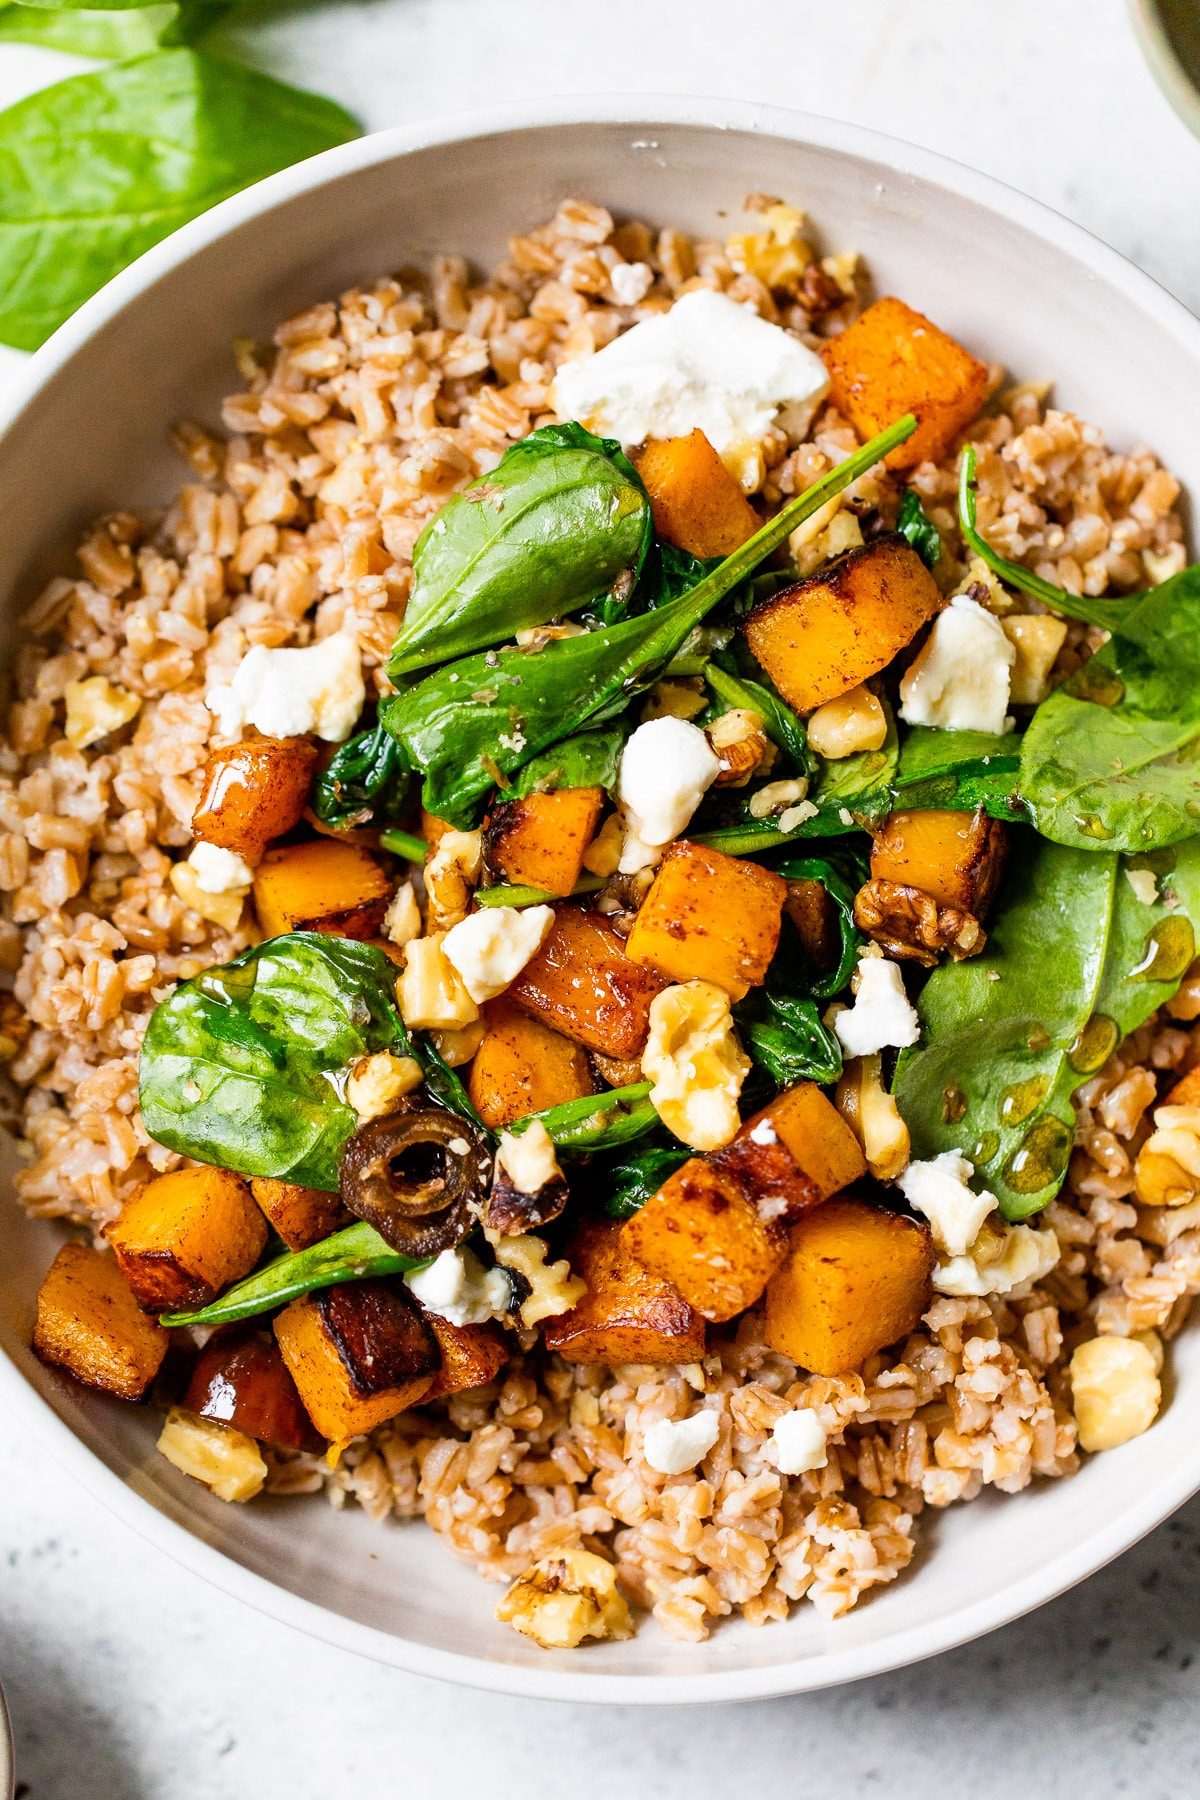 grains in a bowl topped with spinach and squash